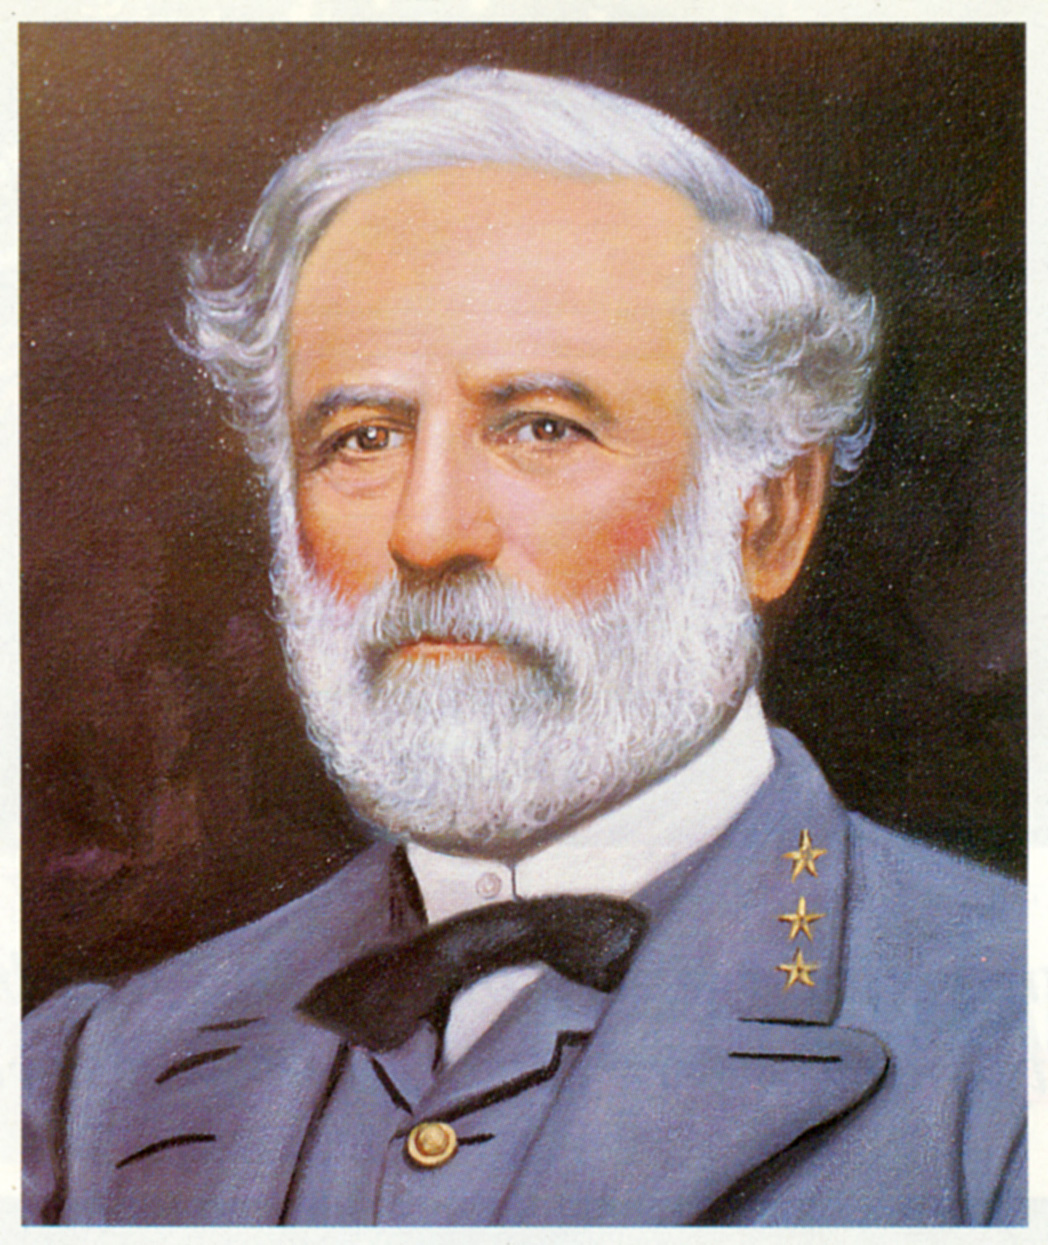 Robert E Lee %28color%29 Is Lee a White, Black, or Asian Surname?  Facebook Finds Out